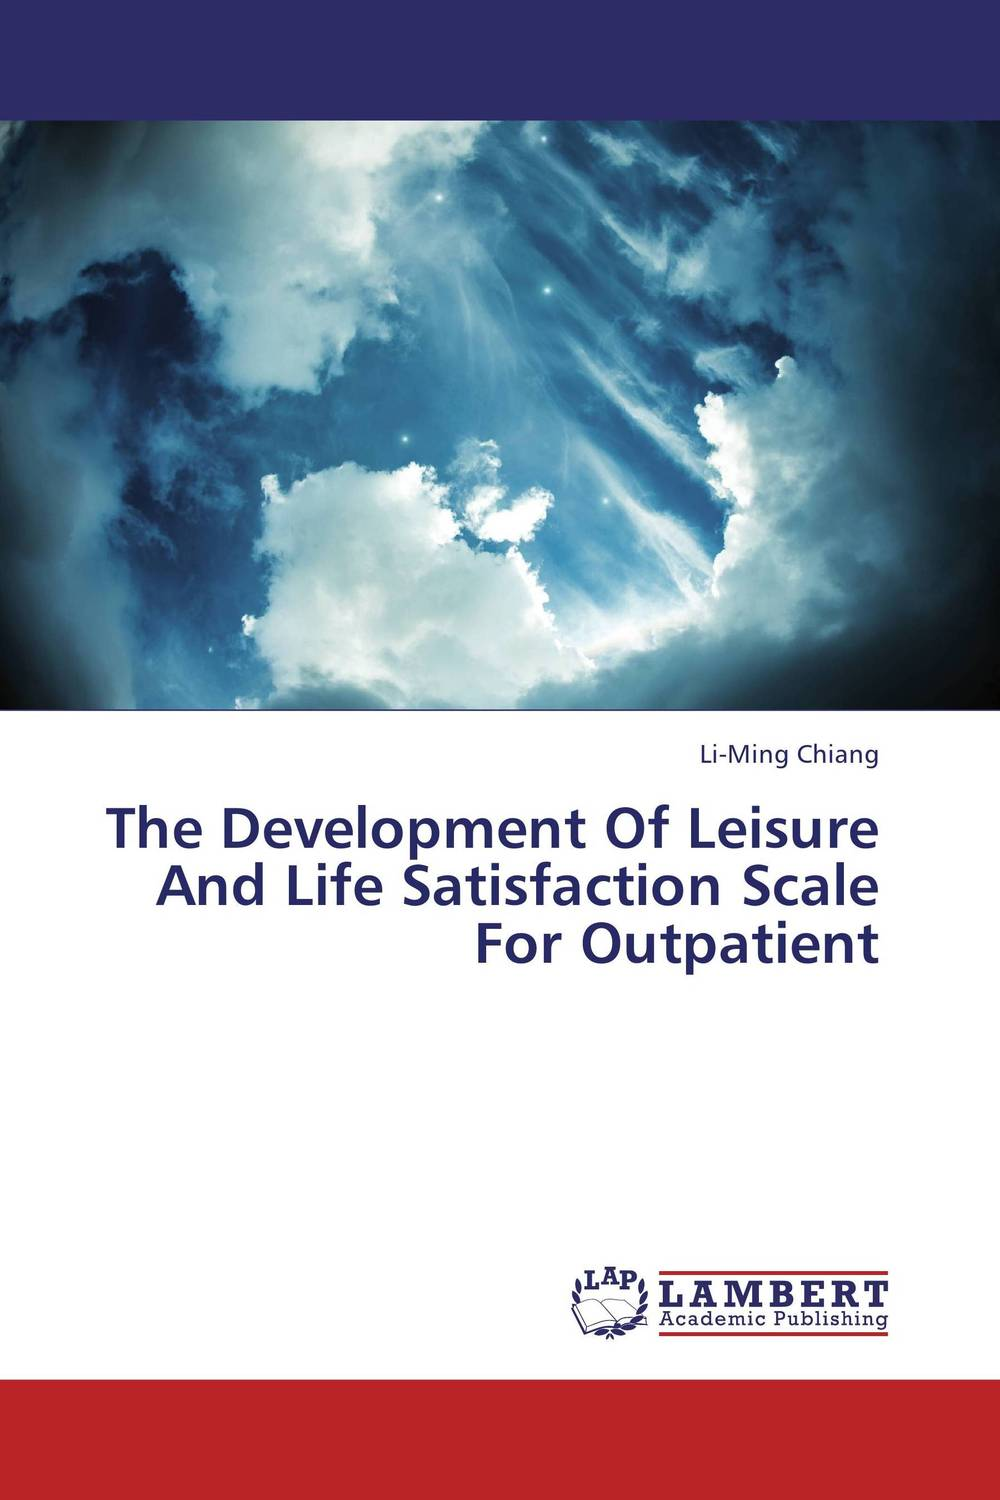 The Development Of Leisure And Life Satisfaction Scale For Outpatient